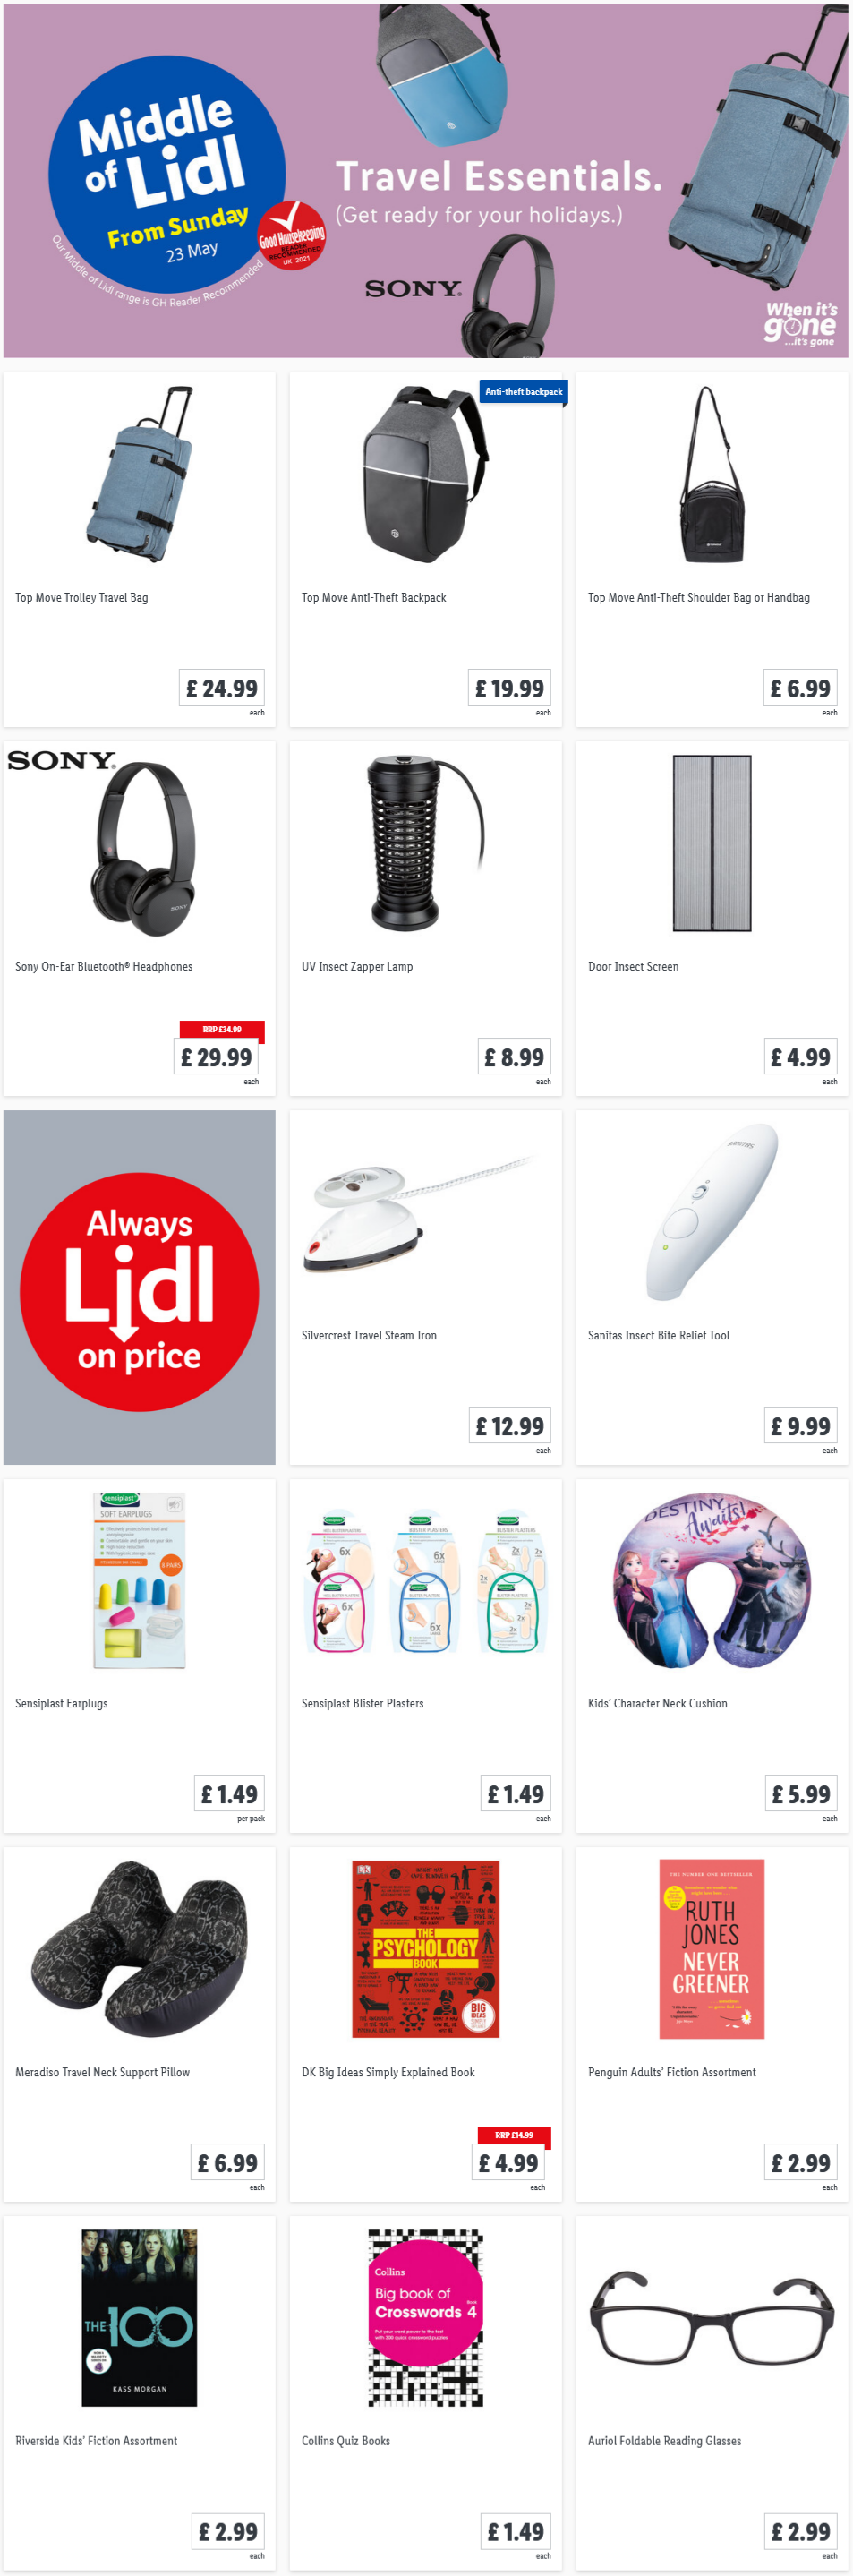 LIDL Sunday Offers Travel Essential from 23rd May 2021